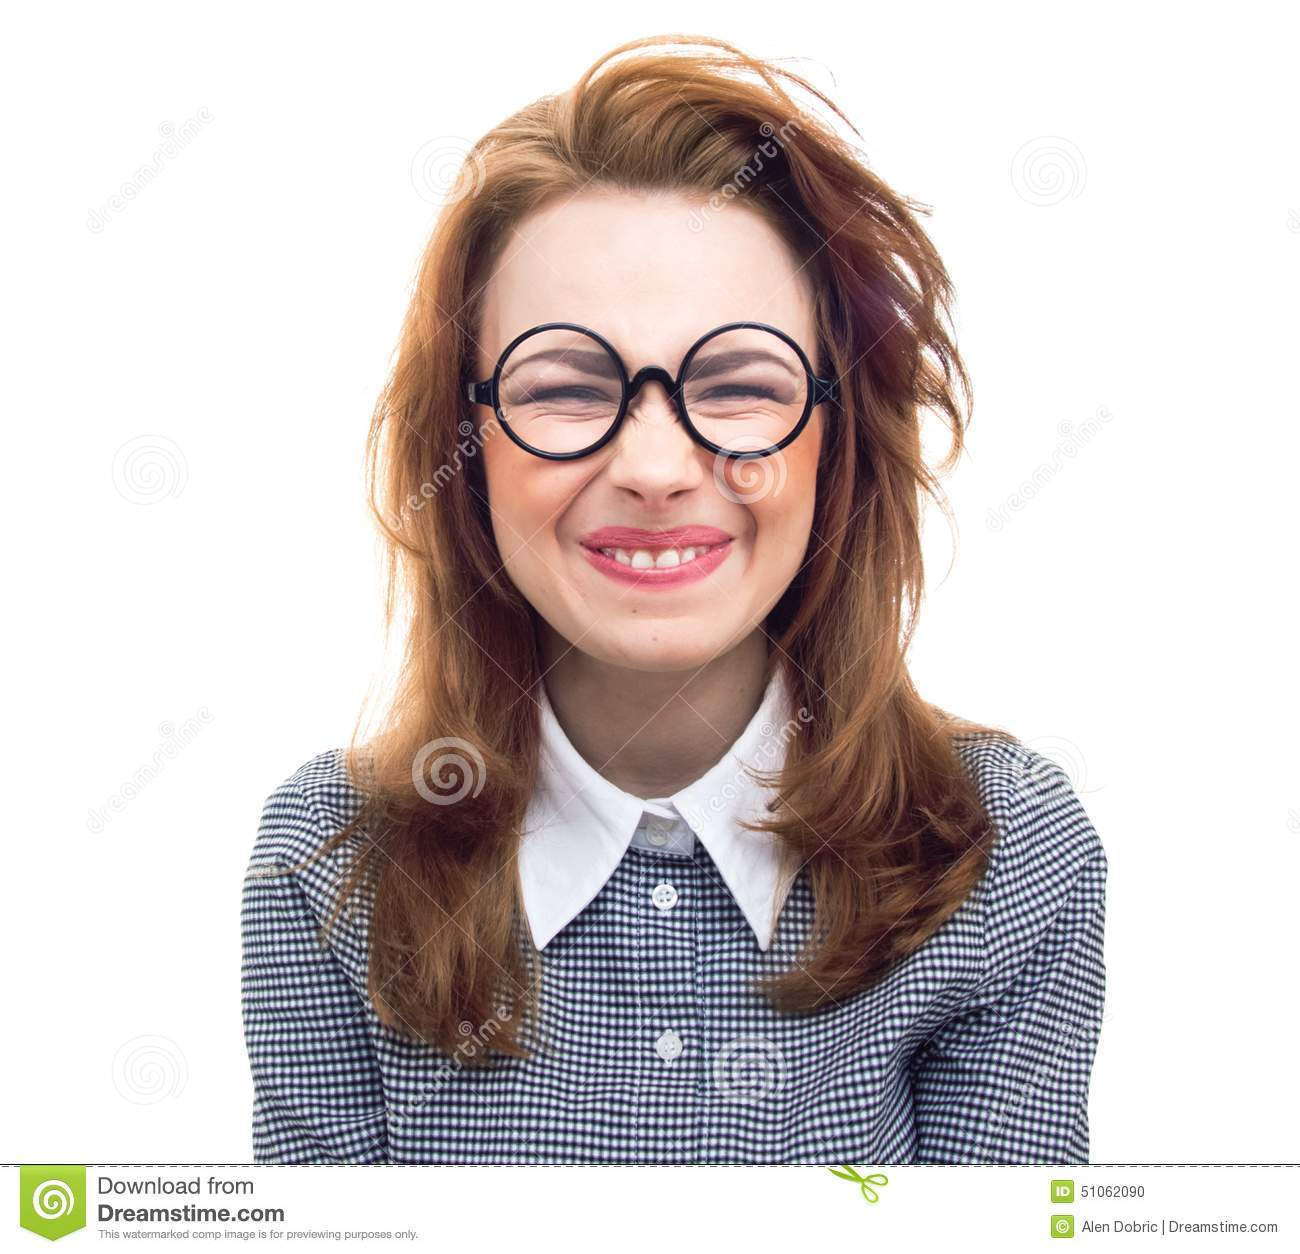 Funny Geek Or Loony Girl Showing Gritted Teeth Stock Photo - Image 51062090-9016